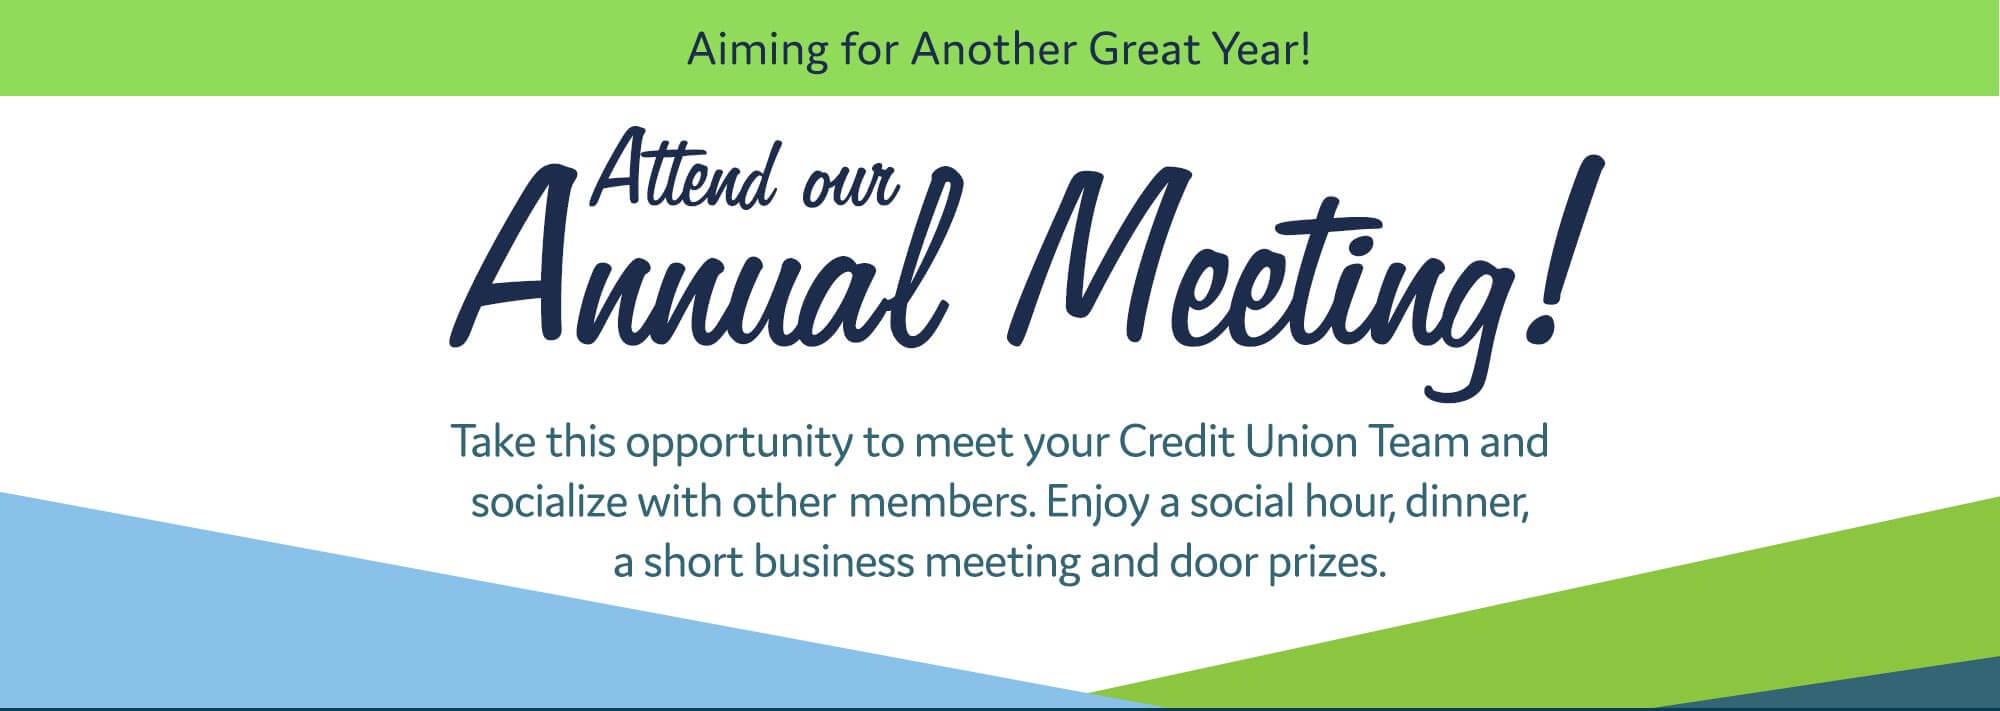 Aiming for Another Great Year! Attend our Annual Meeting! Take this opportunity to meet your Credit Union Team and socialize with other members. Enjoy a social hour, dinner, a short business meeting and door prizes.